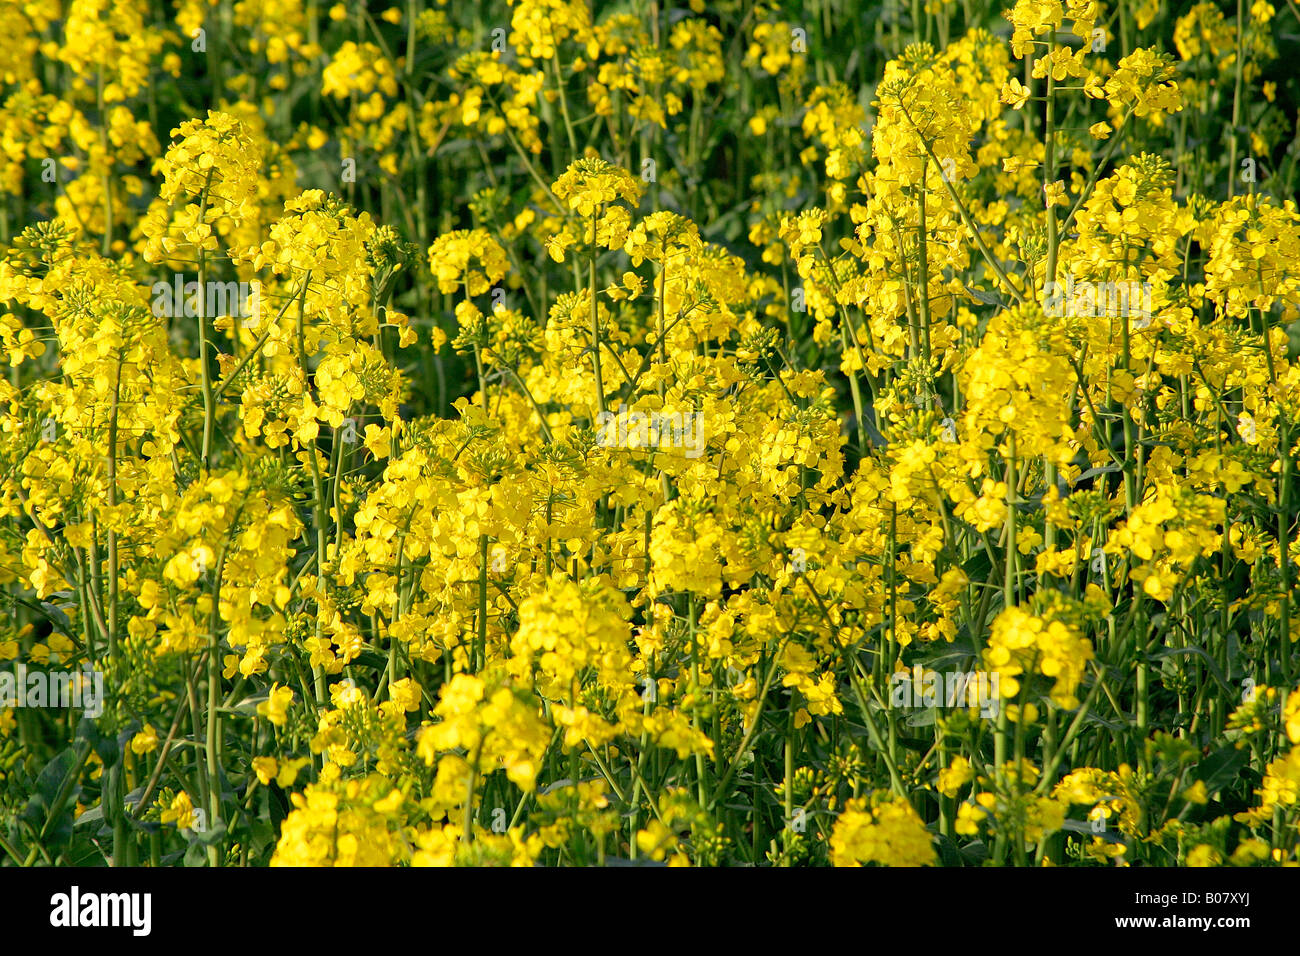 Fields of yellow oilseed rape flower crops spring cambridgeshire fields of yellow oilseed rape flower crops spring cambridgeshire england britain uk mightylinksfo